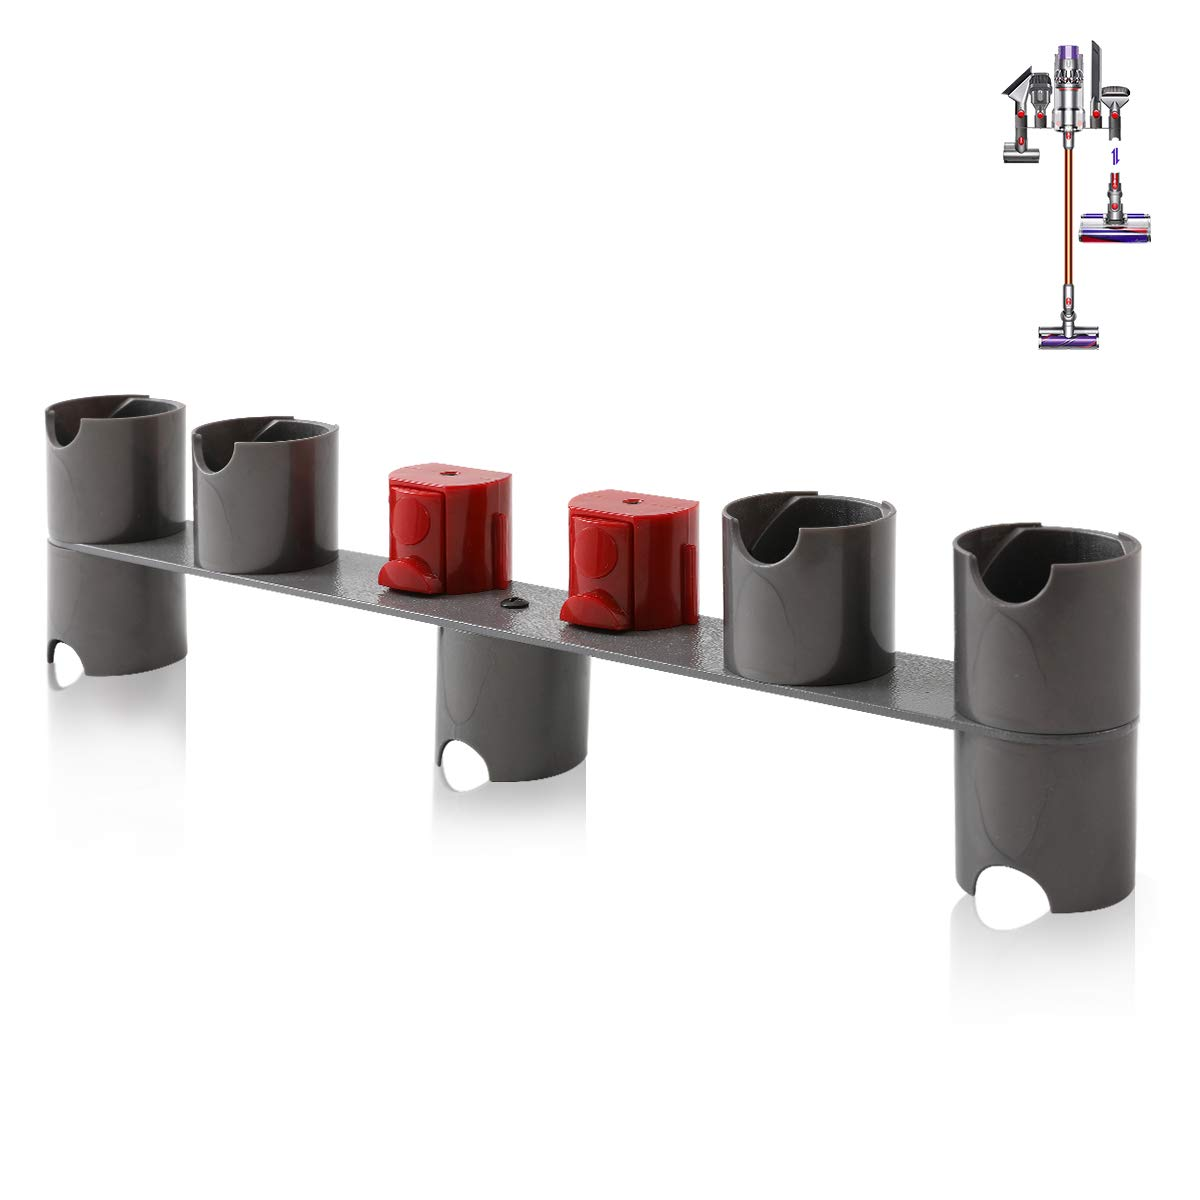 DerBlue Docks Station Accessory Holders Fit for Dyson V7,V8 Vacuum Cleaner(Seven adapters)-2.0 Version by DerBlue